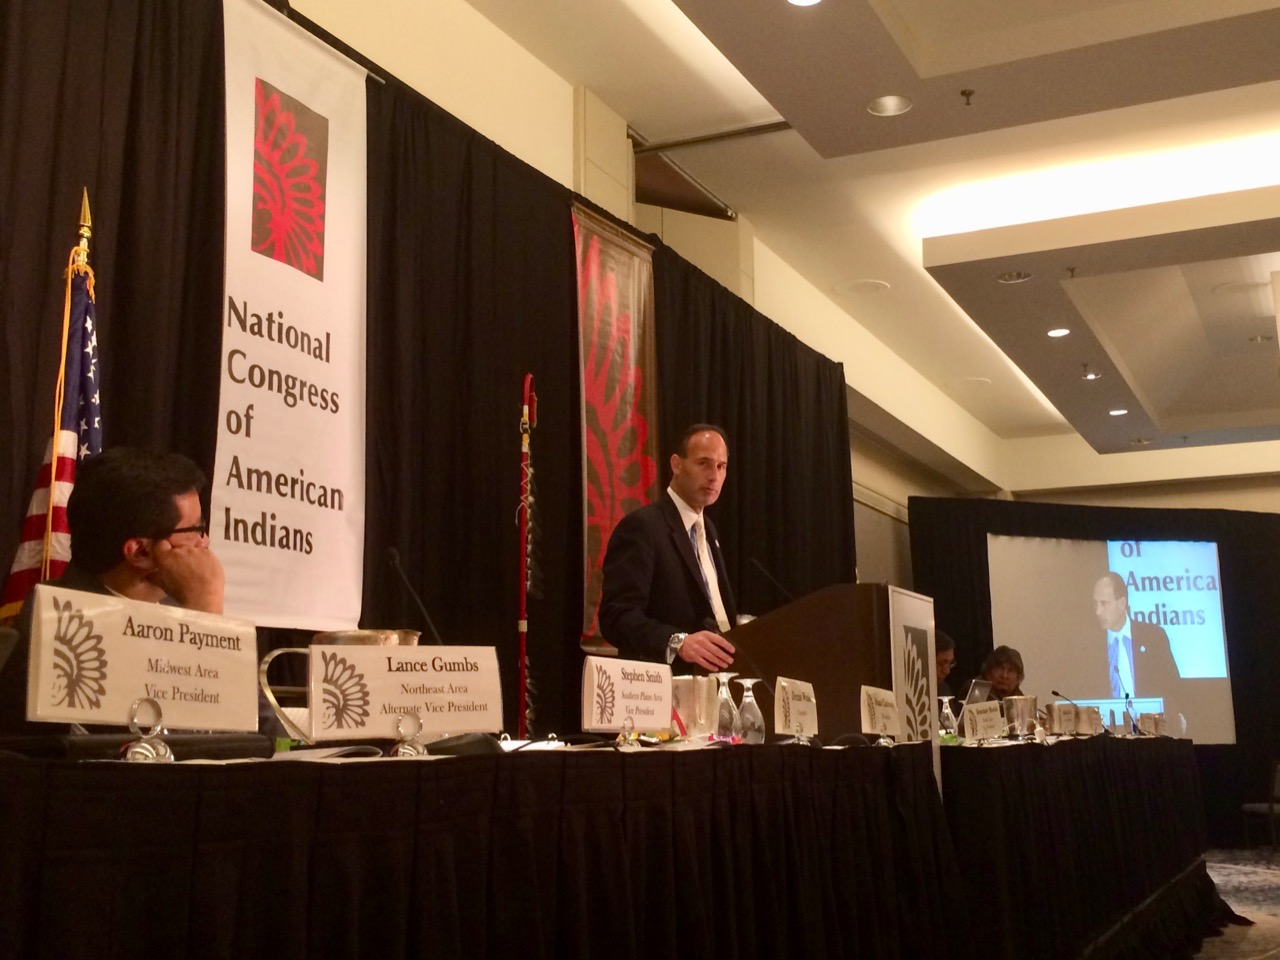 National Congress of American Indians enters 'new chapter' with new executive